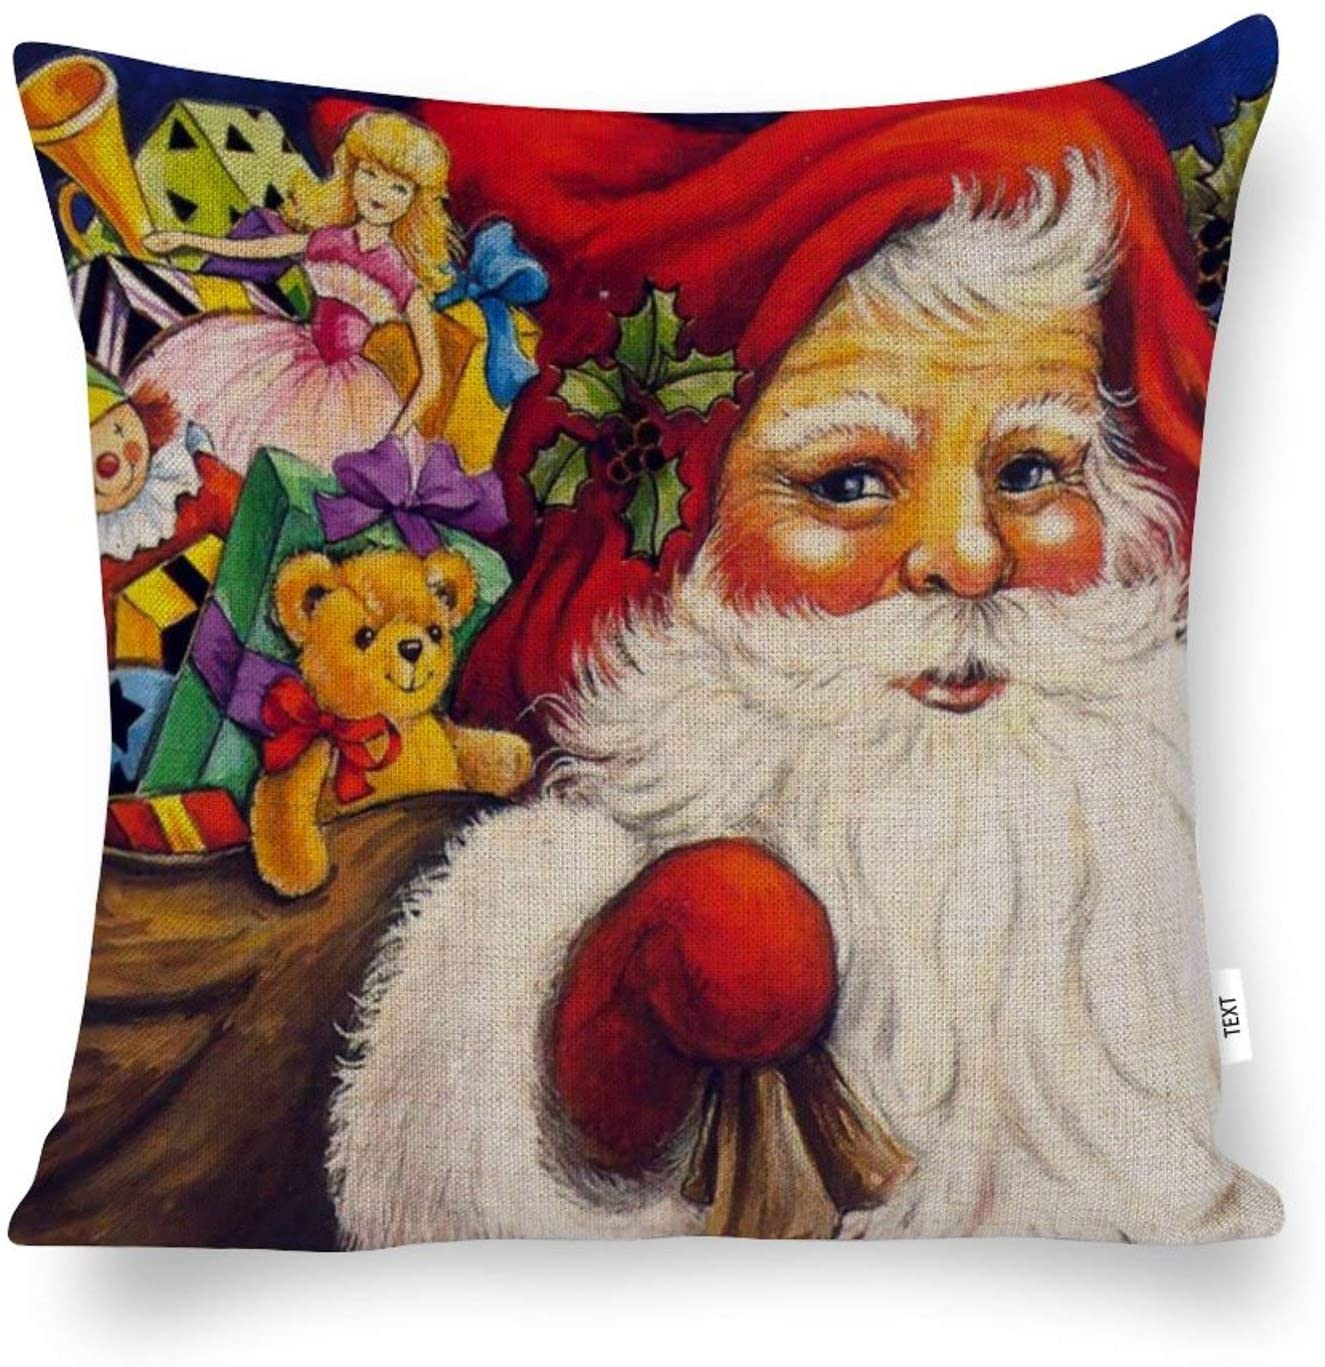 AILOVYO Decorative Cotton and Hemp Throw Pillow Covers Family and Santa for Room Bedroom Room Sofa Chair Car